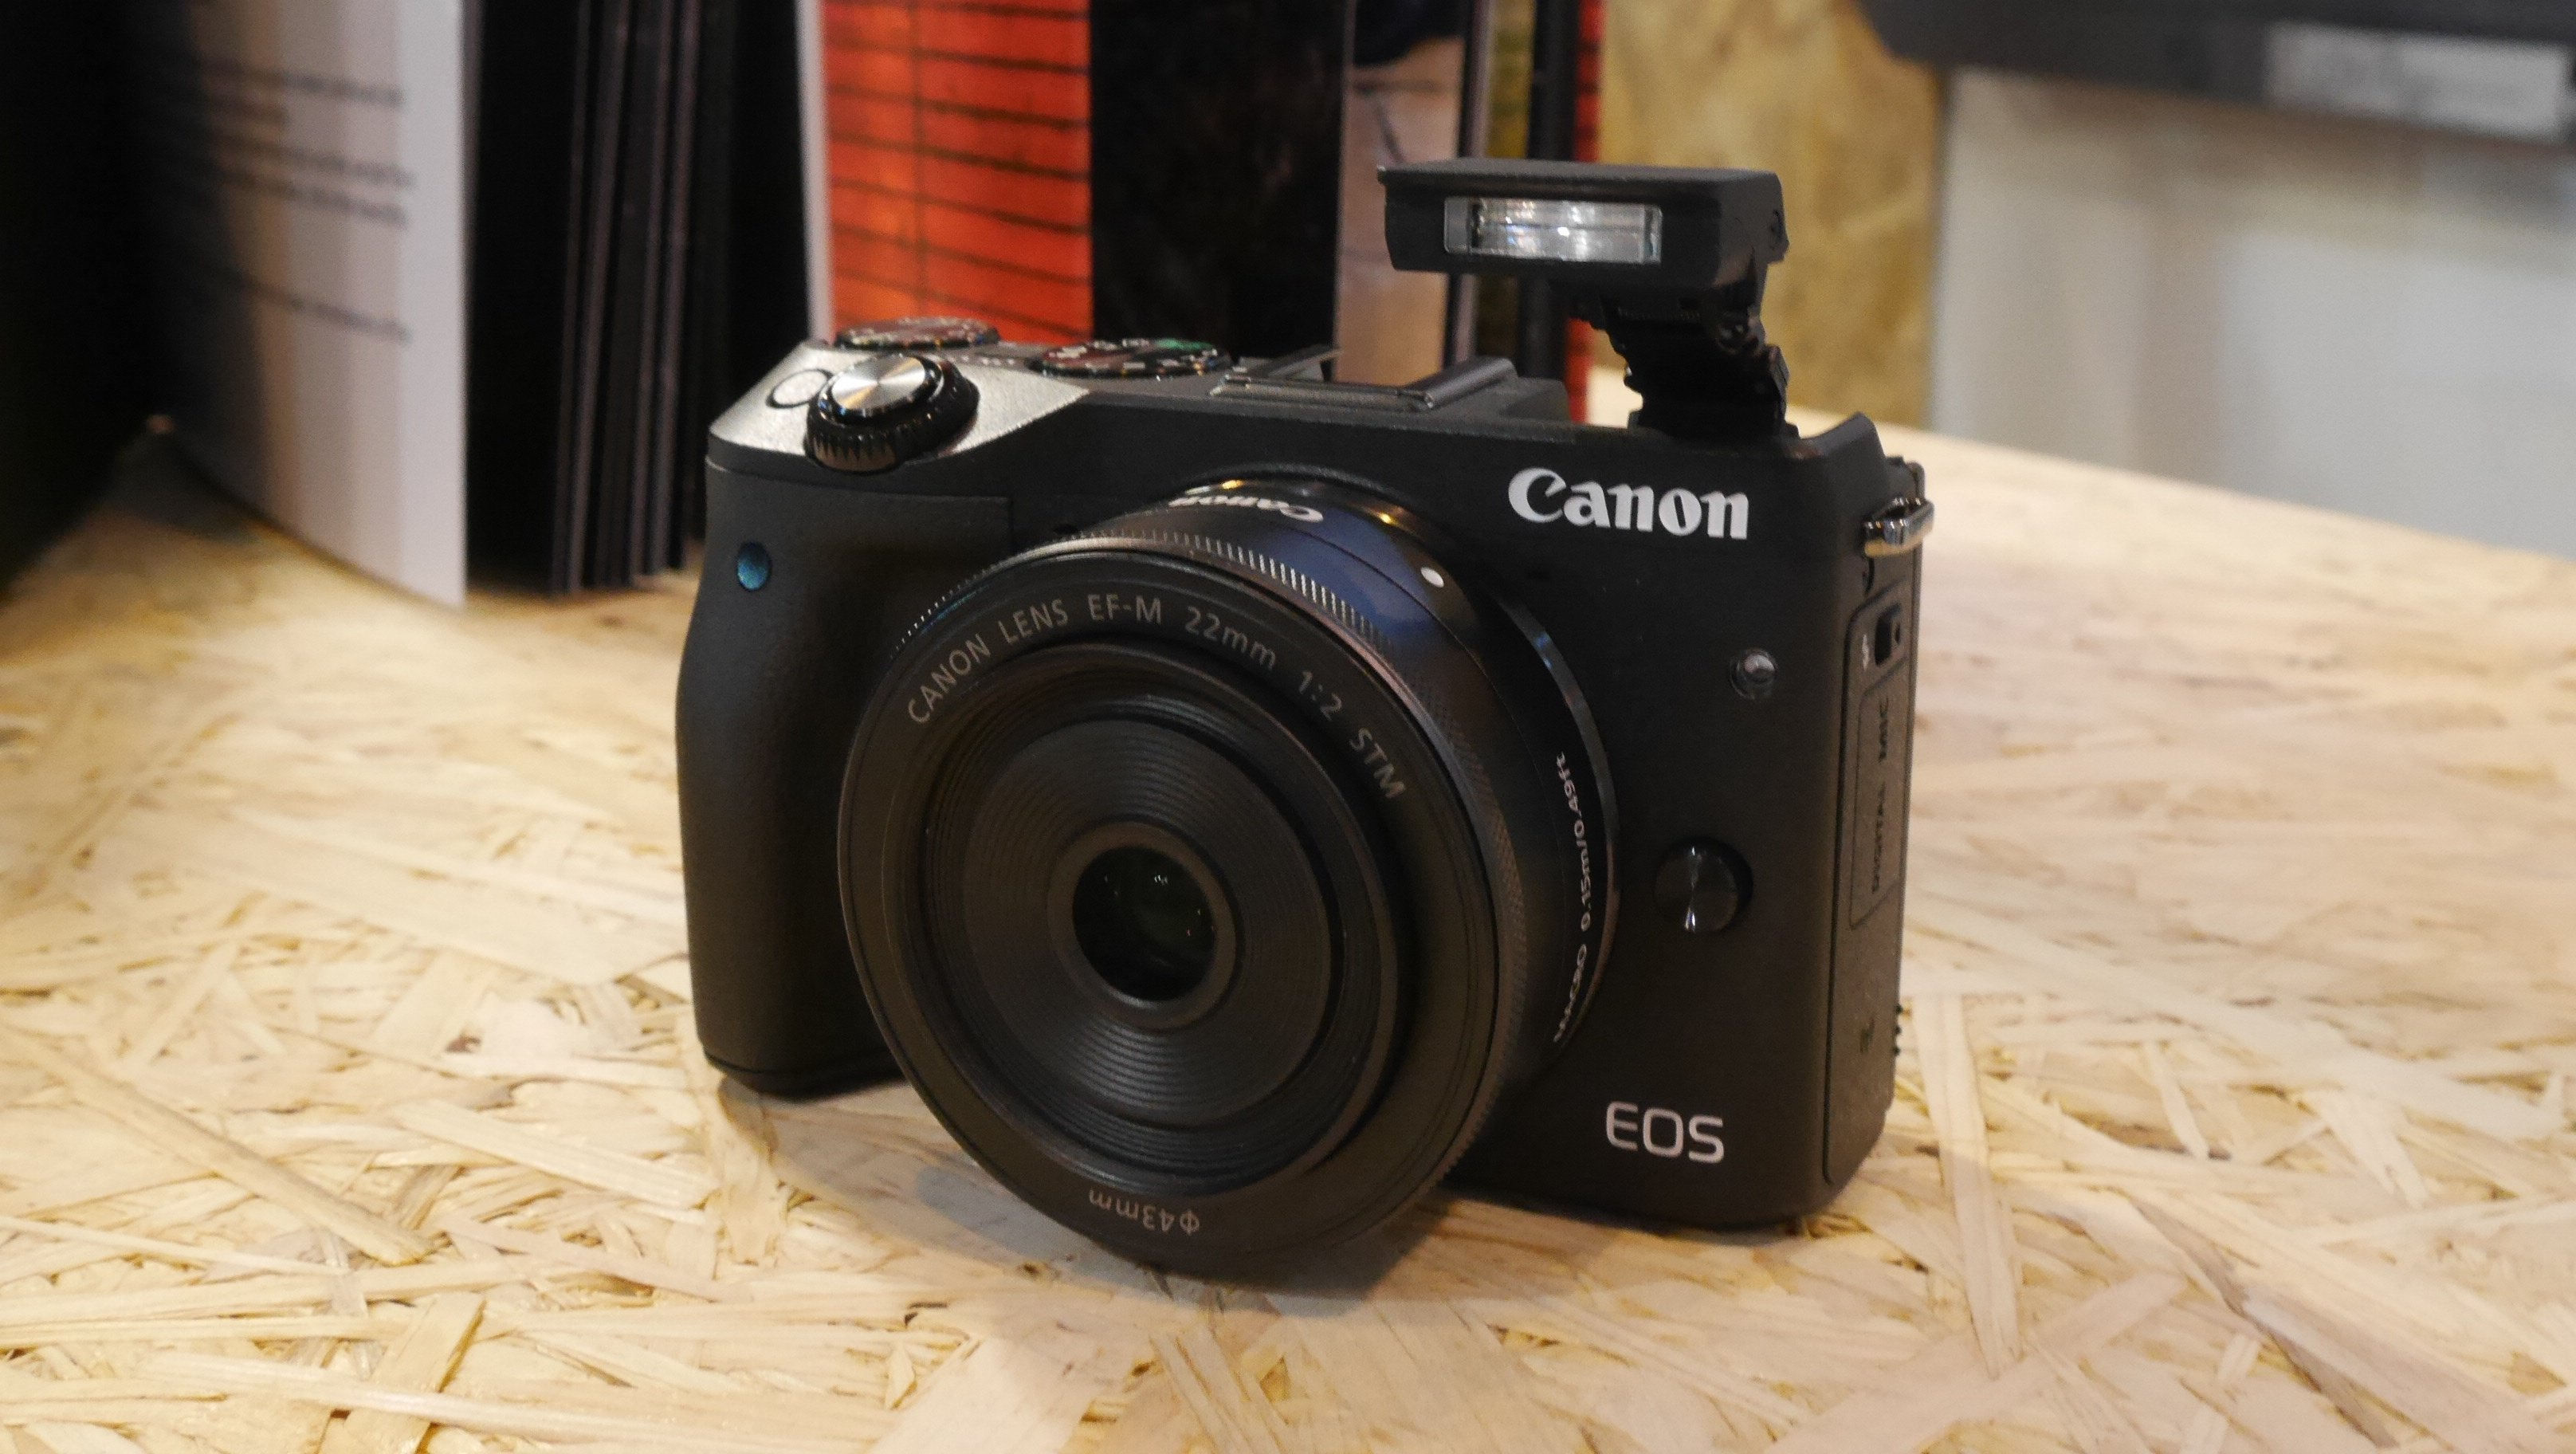 Canon Eos M3 Review Hands On Expert Reviews M10 Kit 15 45 Is Stm M 10